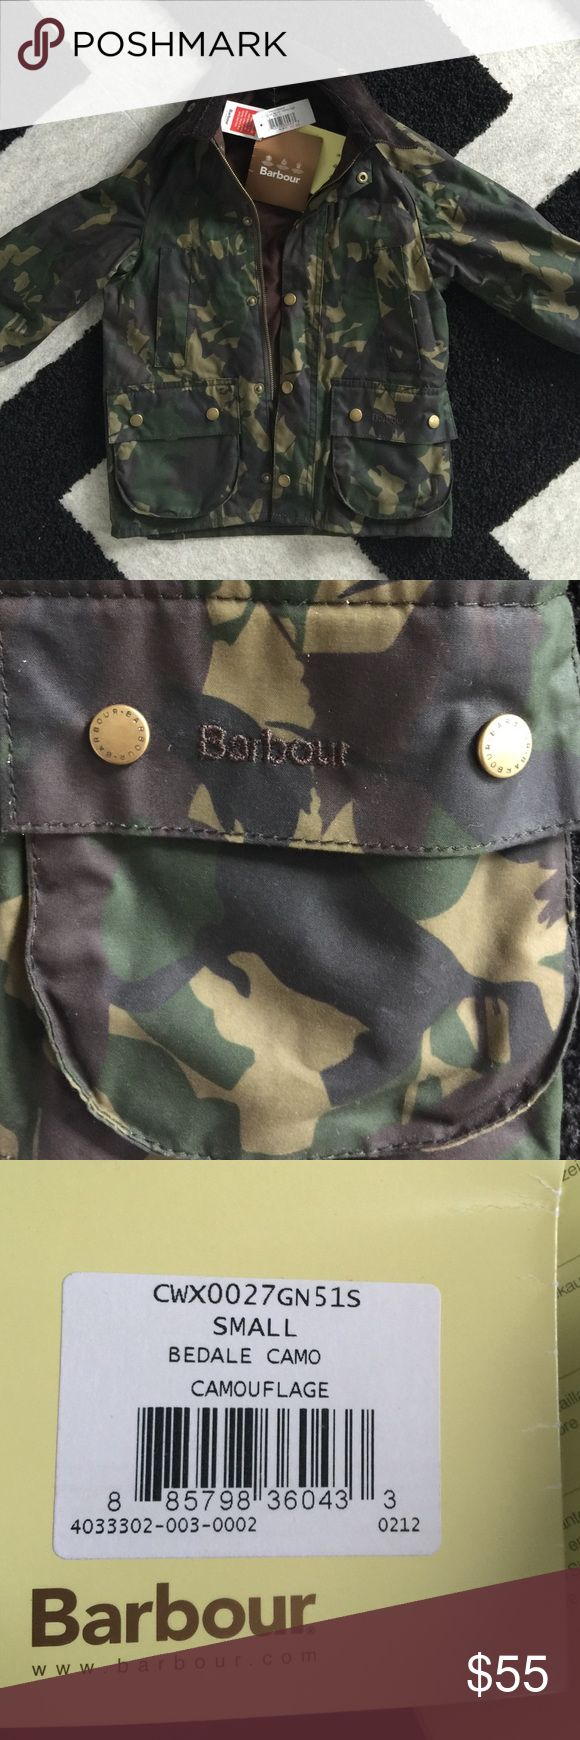 Barbour kid's camouflage coat- new with tags Kid's Barbour Bedale Camo jacket. New with tags. 6/7 size Small. Mix of greens Barbour Jackets & Coats Utility Jackets